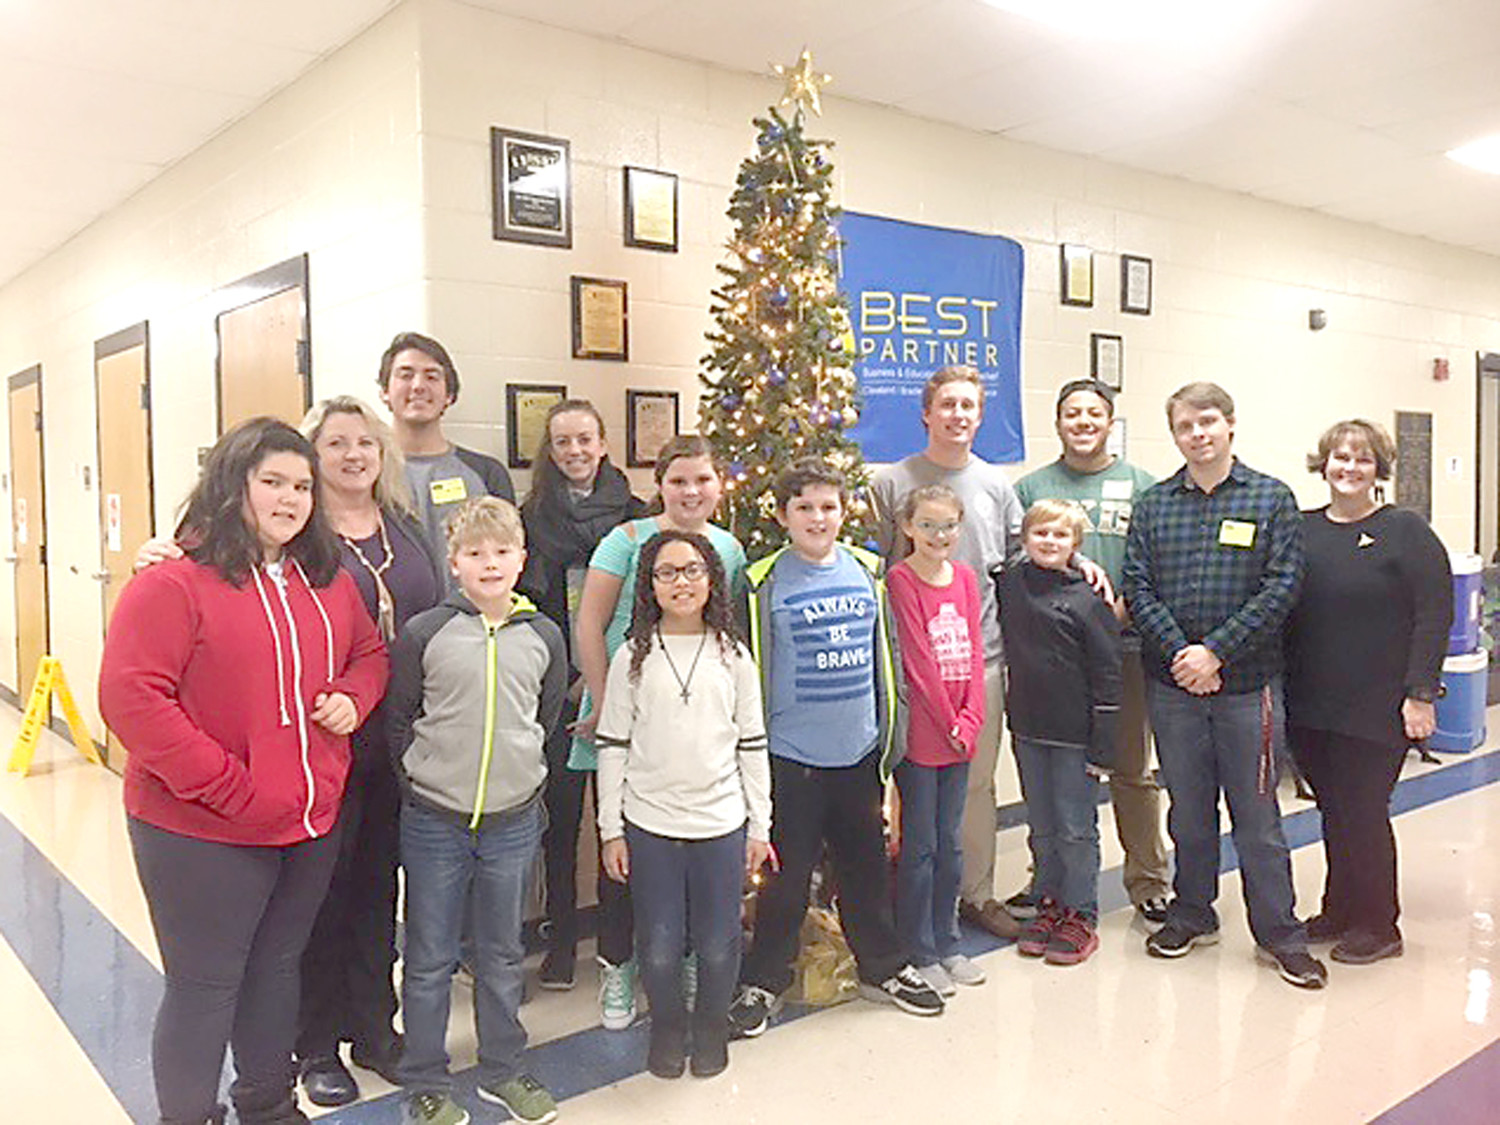 LEE UNIVERSITY students have been helping teach communication skills to students at Michigan Avenue Elementary School. Pictured are some of the 60 fourth-graders and 80 Lee students who participated recently. In the front row, from left, are Adrianna Brookshire, Gavin Chamberlin and Jazzmyn Taylor. In the back row are Debbie Walker, Ryan Beamish, Anne Hedegaard, Madalyn Strickland, Noah Shuler, Maggie Arrowood, Dalton Ney, Braxton Sampson, Peyton Clark, Jacob Westveer and Dr. Megan Moe.